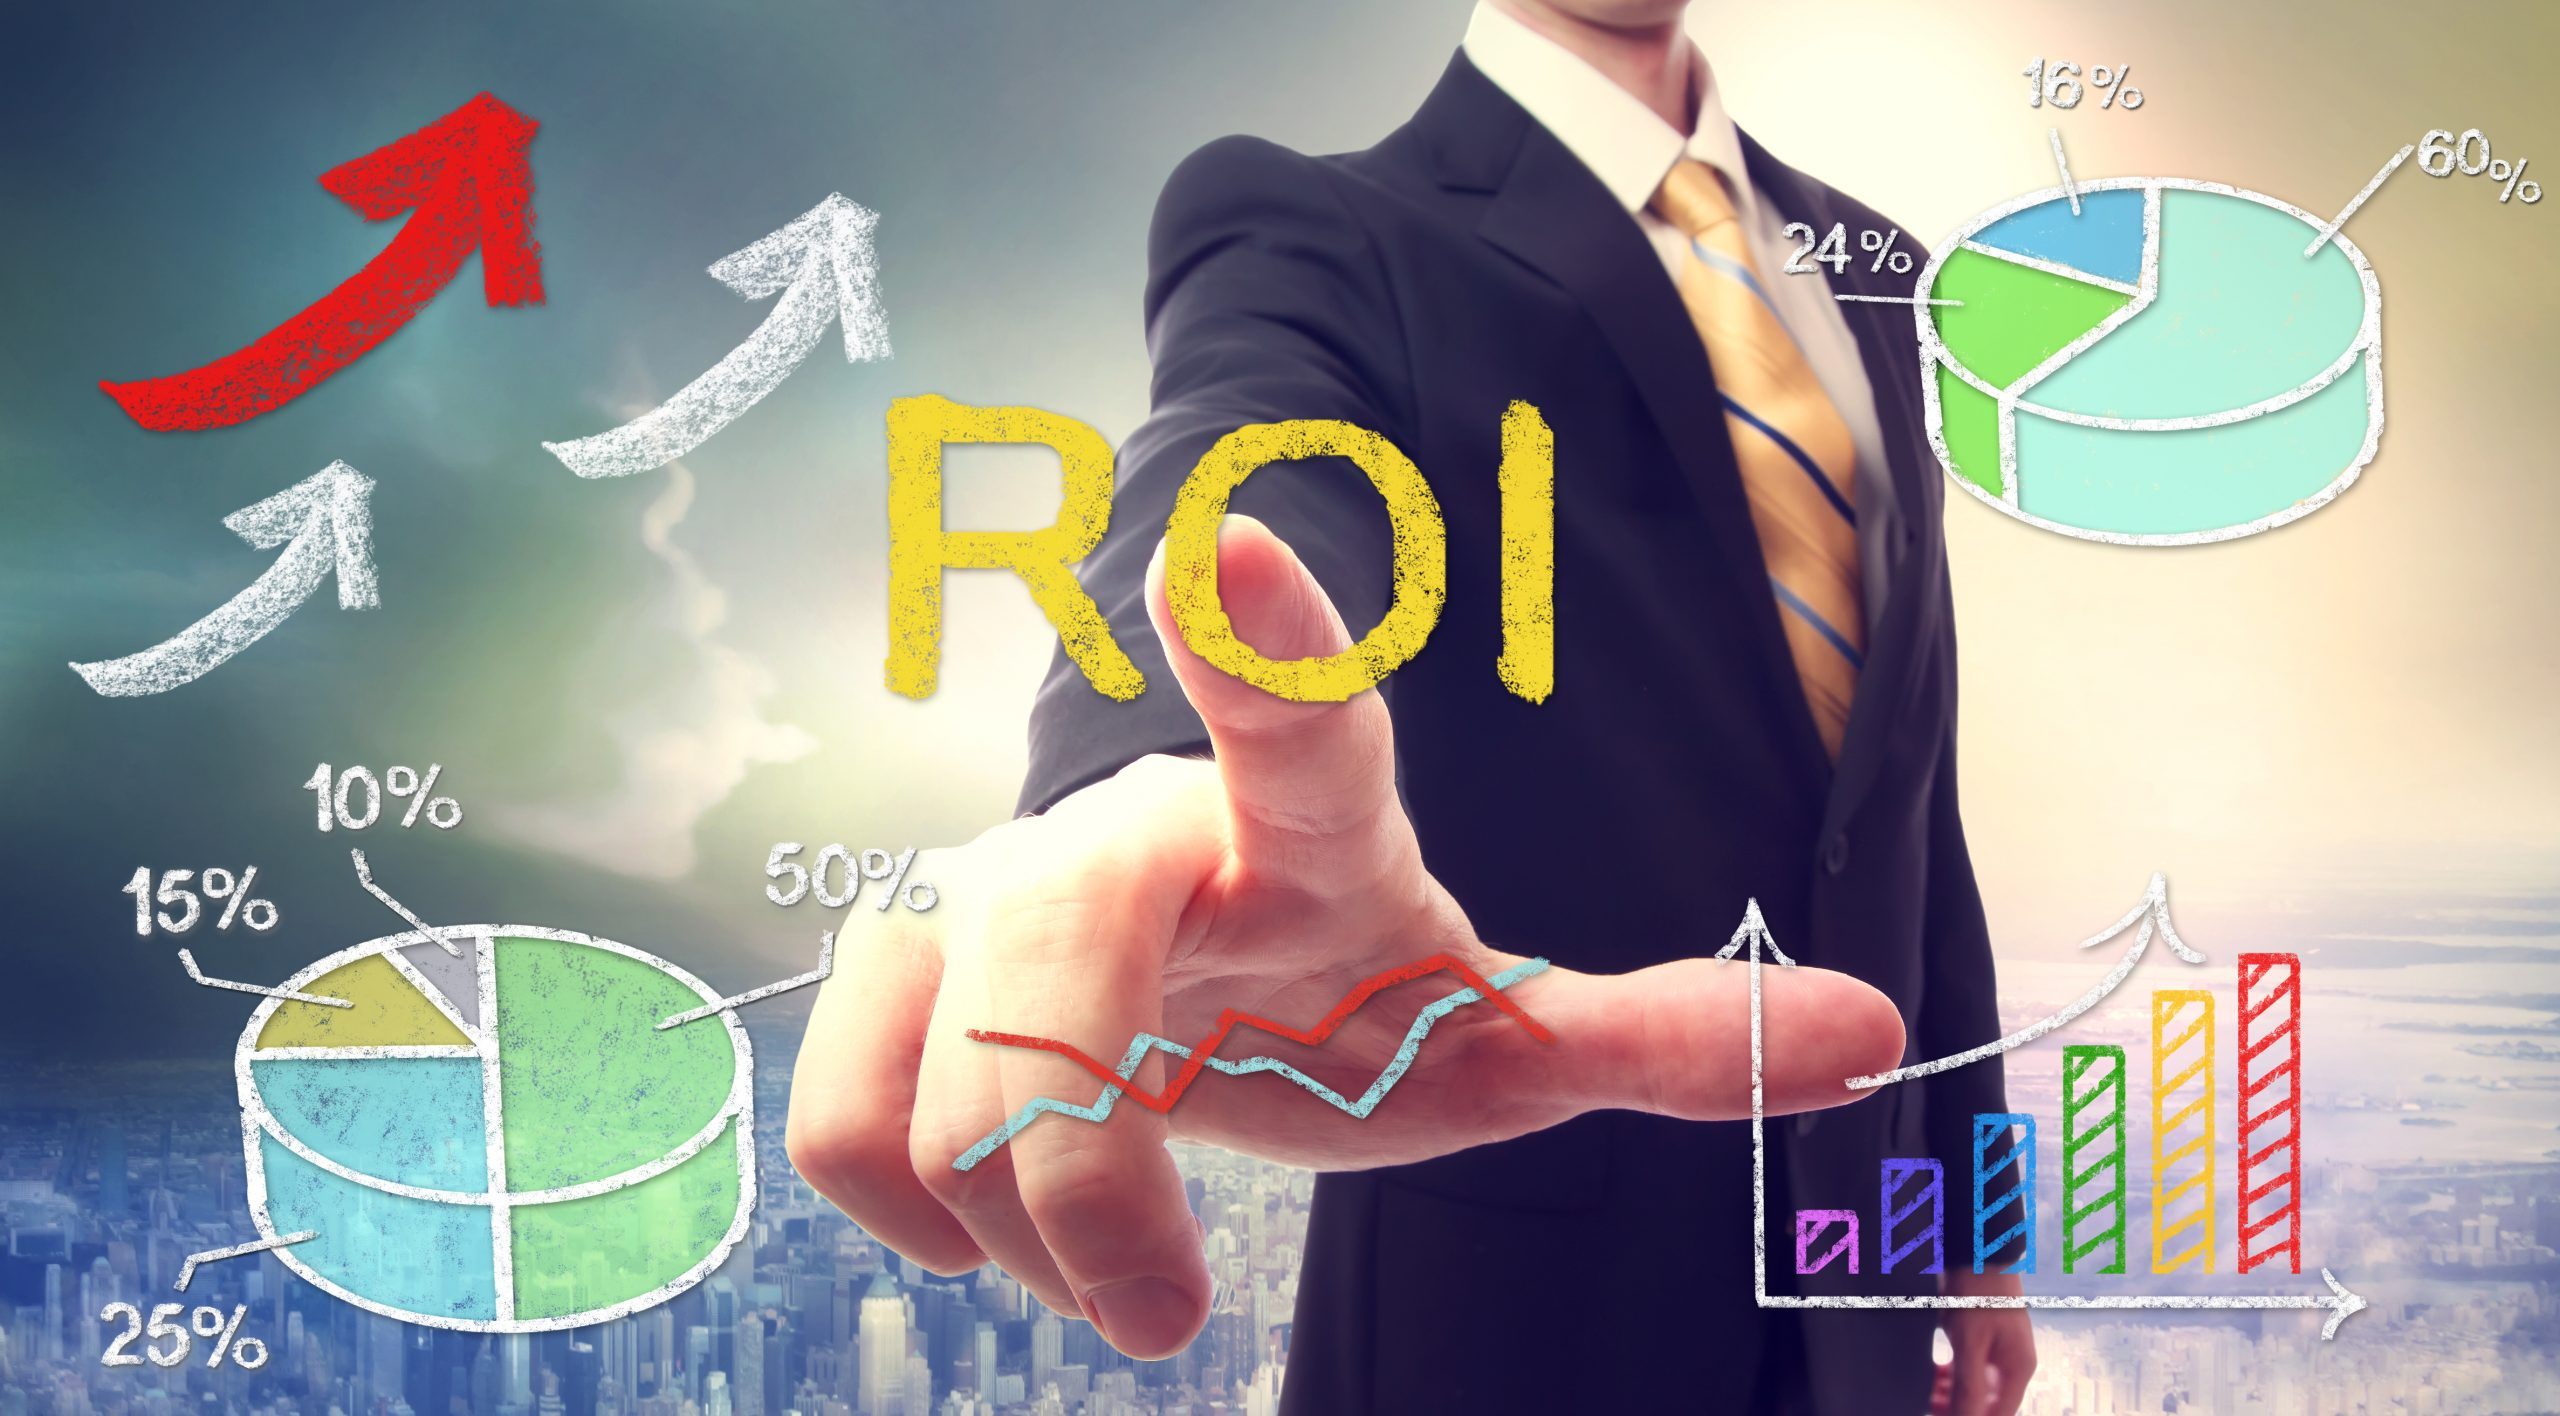 Technical Business Consulting ROI